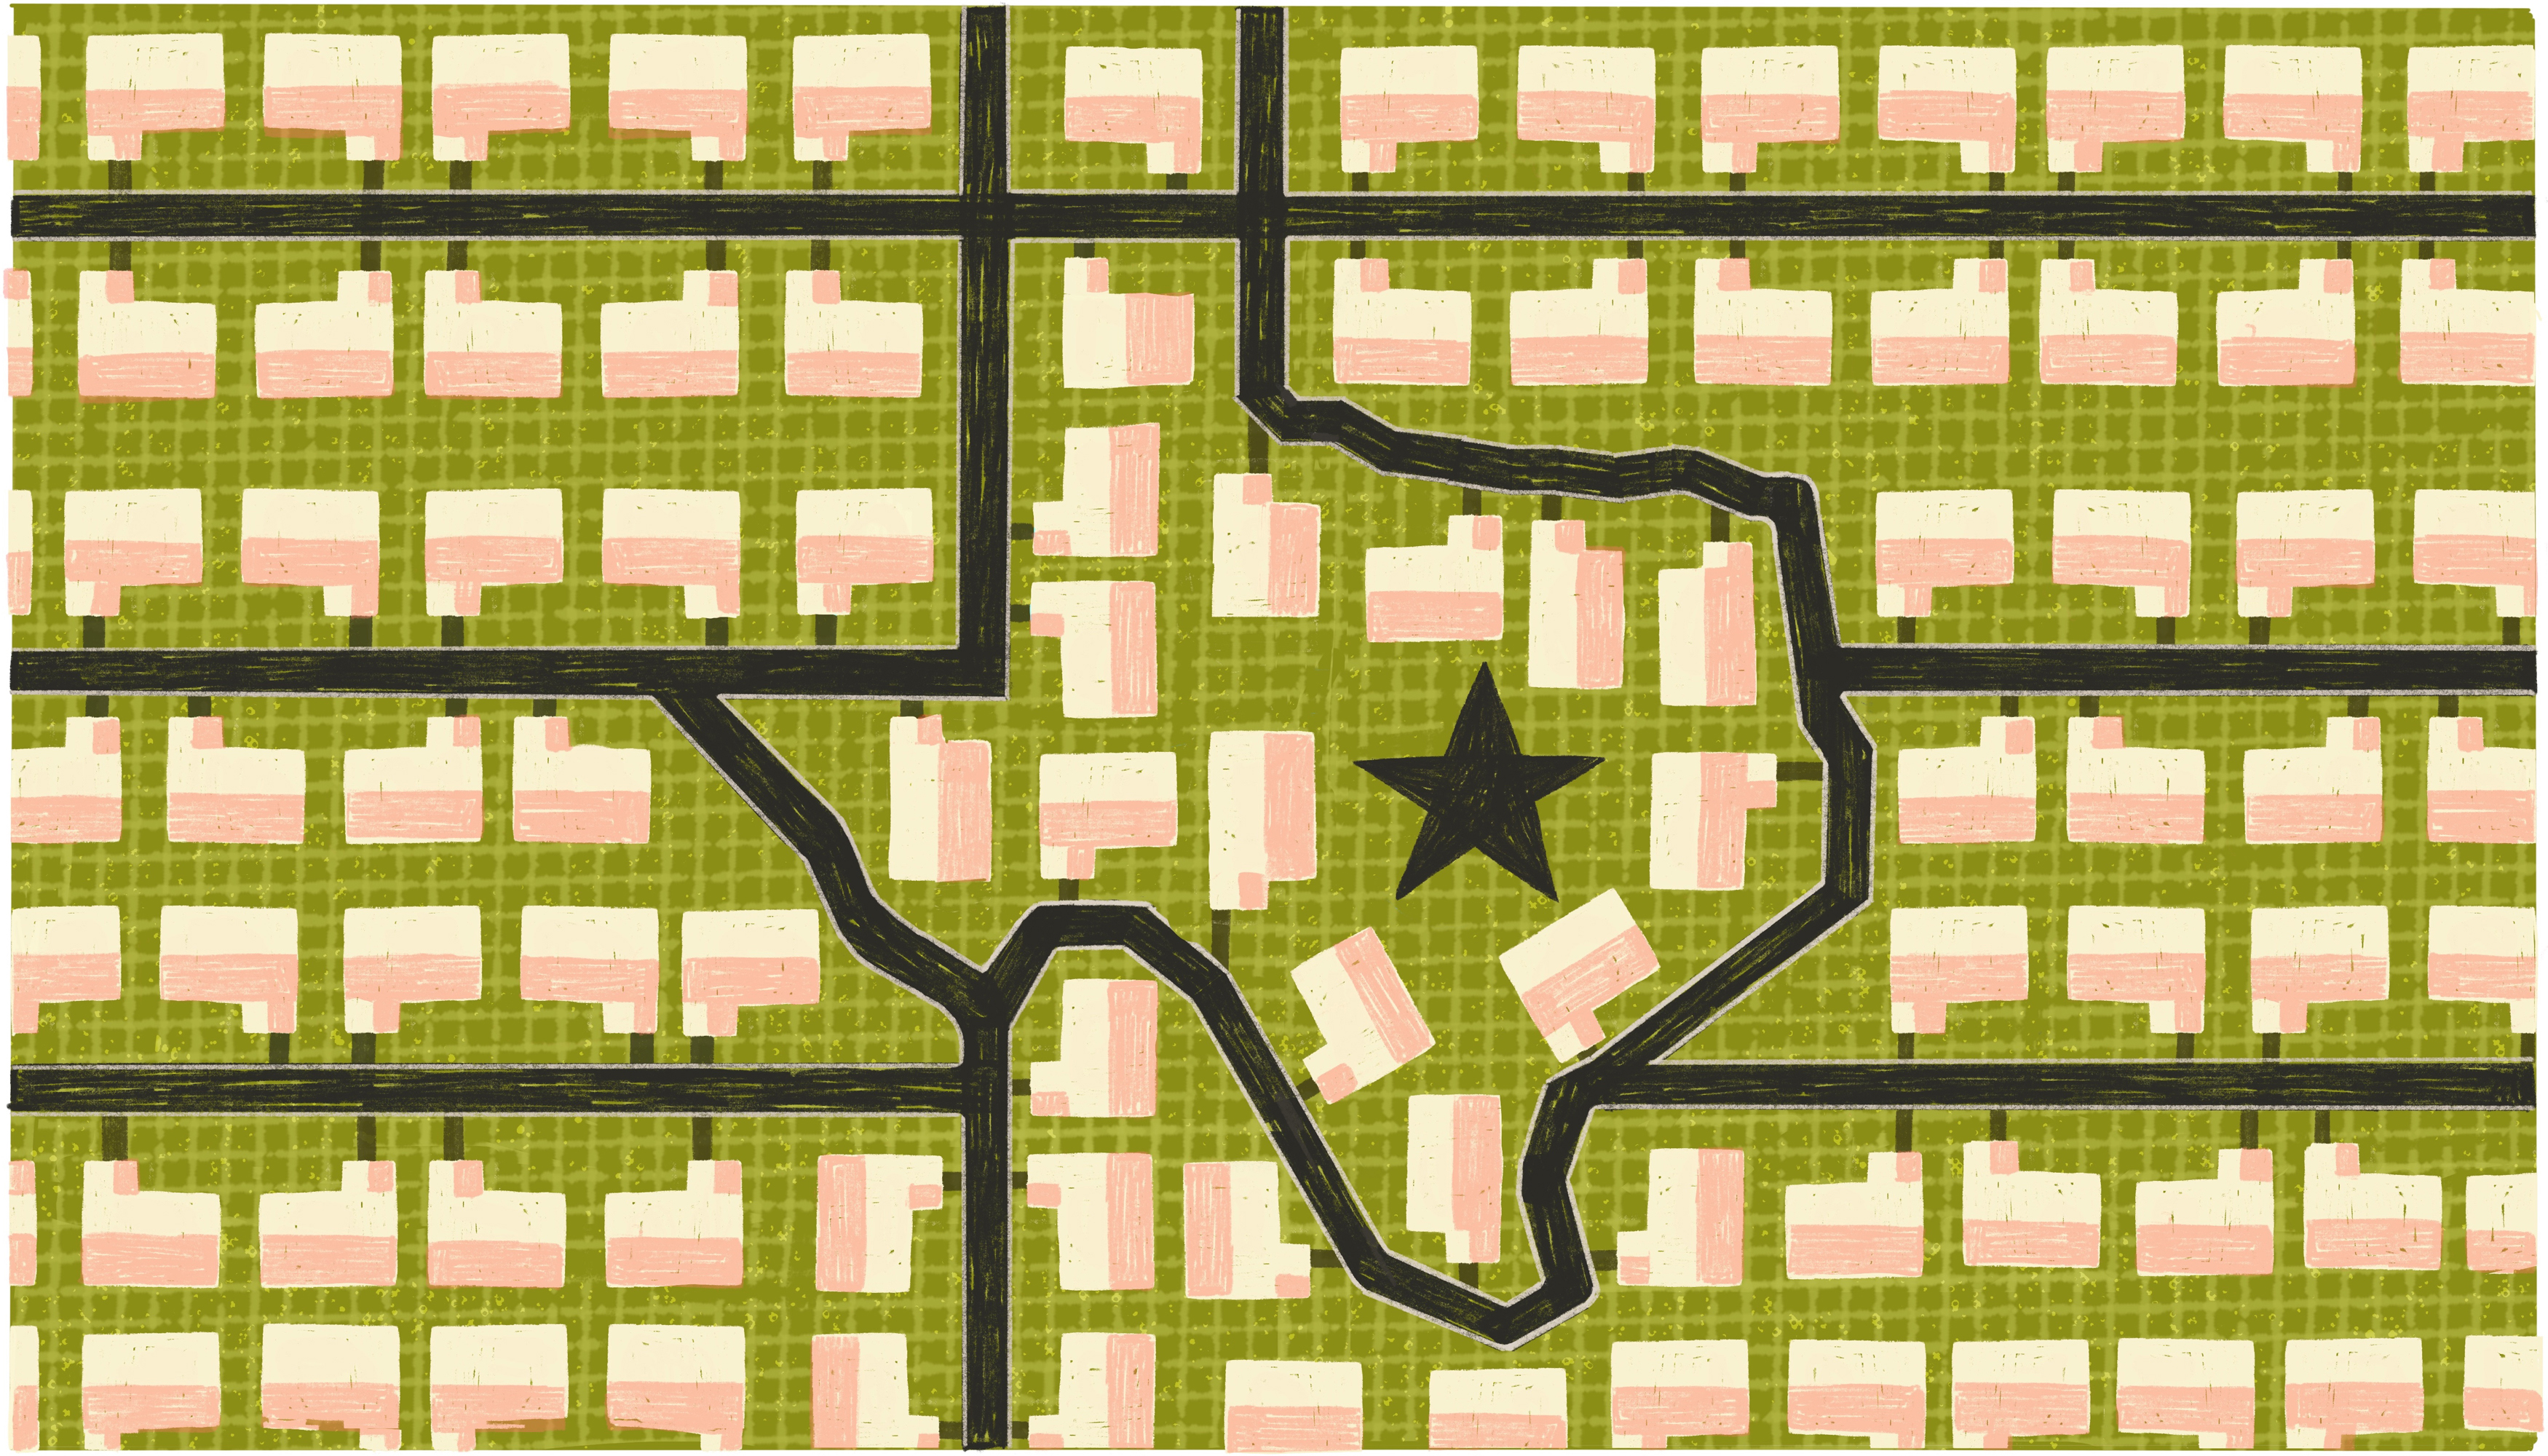 An aerial view of the roadways and homes in a suburban neighborhood. The homes are all the same and arranged very neatly. The roads form the outline of the state of Texas. Illustration.